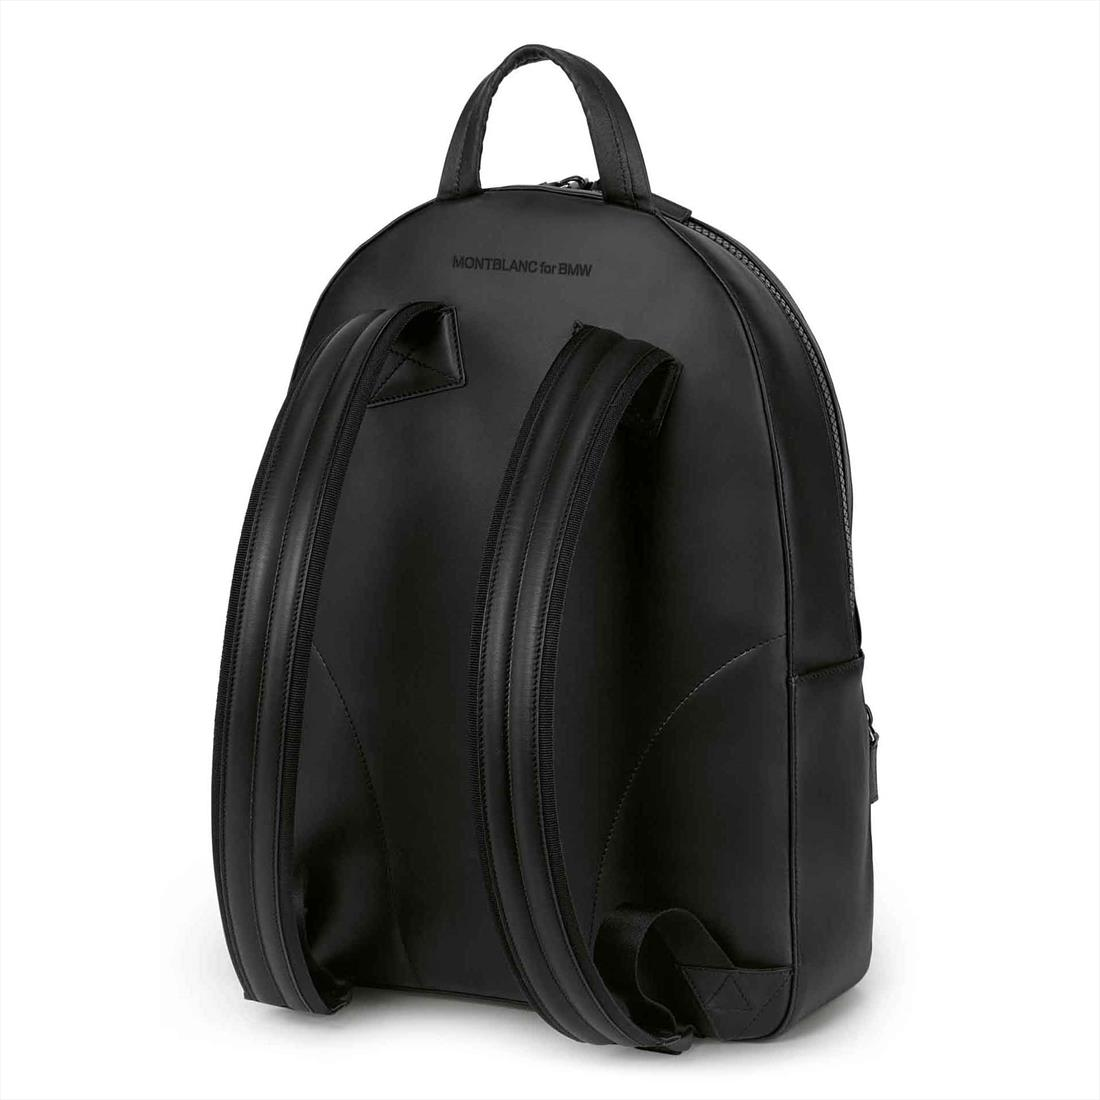 MONTBLANC FOR BMW BACKPACK